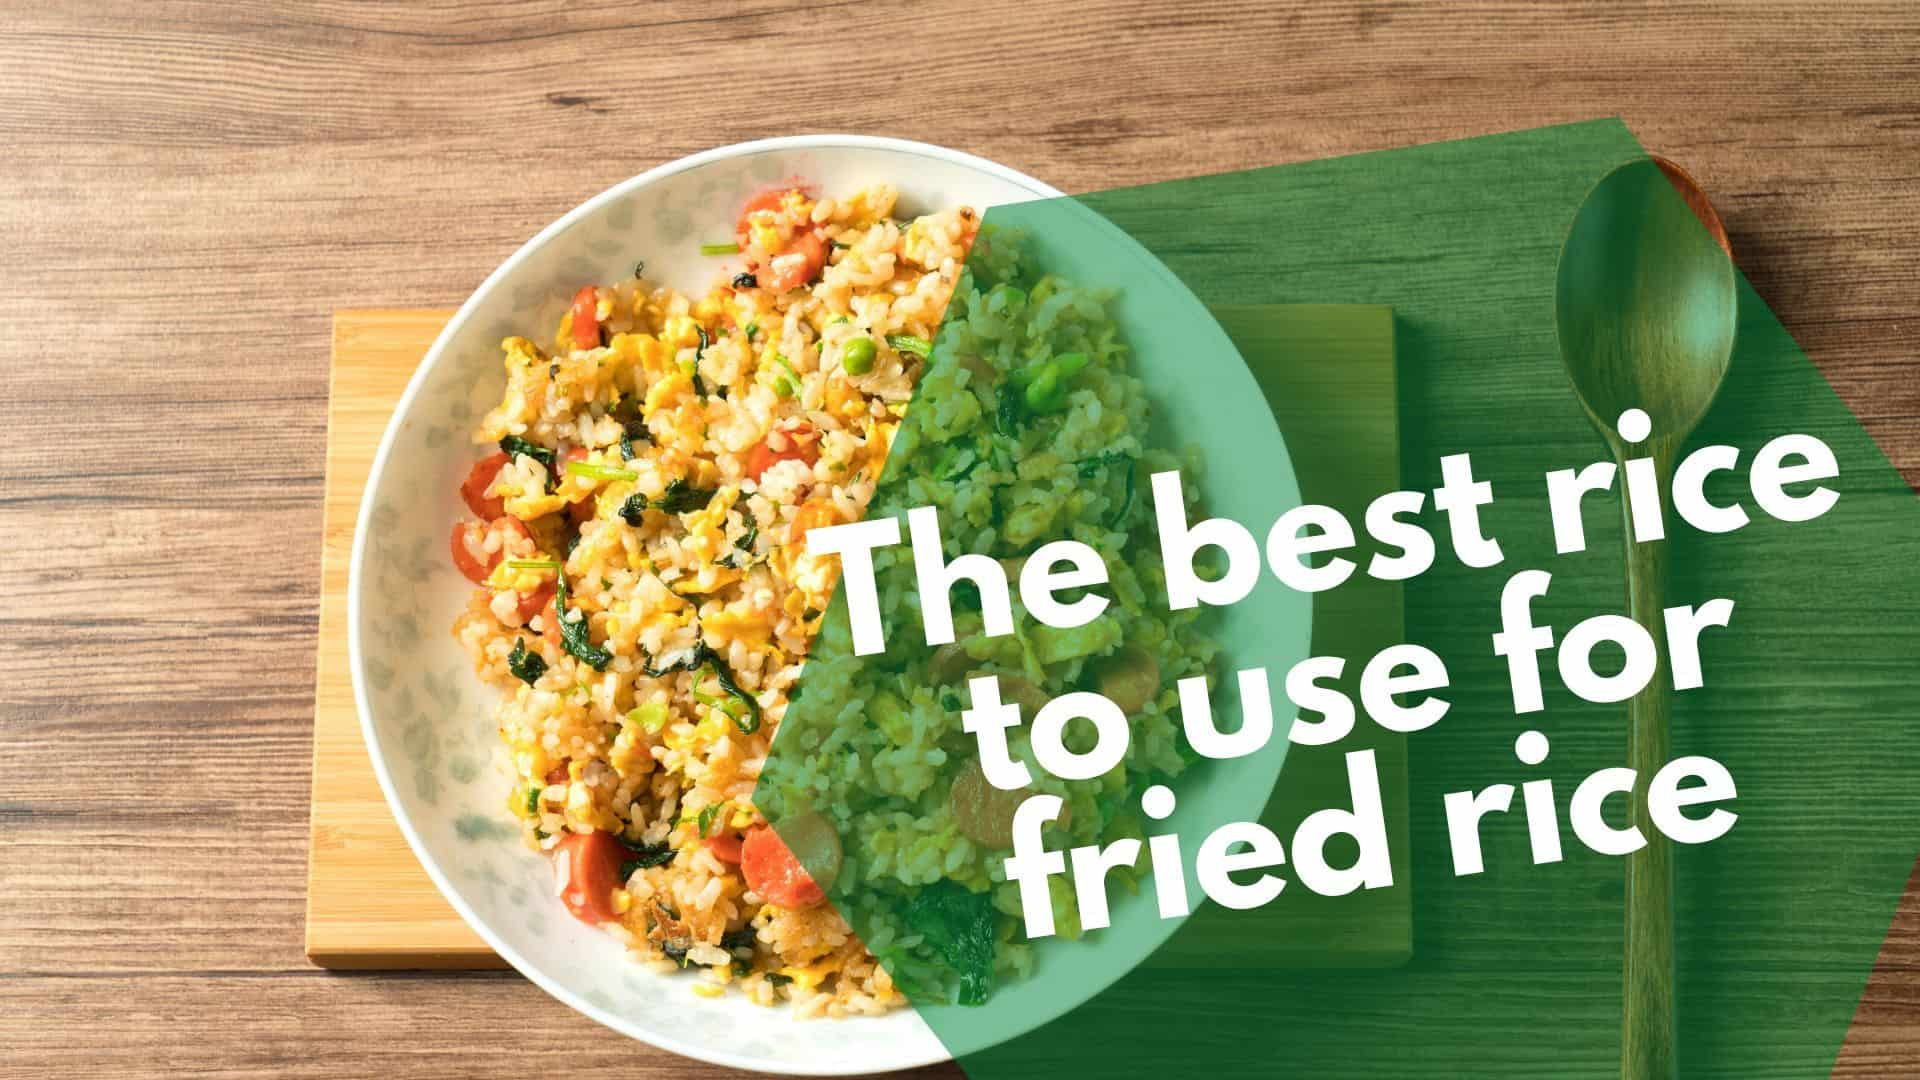 The best rice to use for fried rice